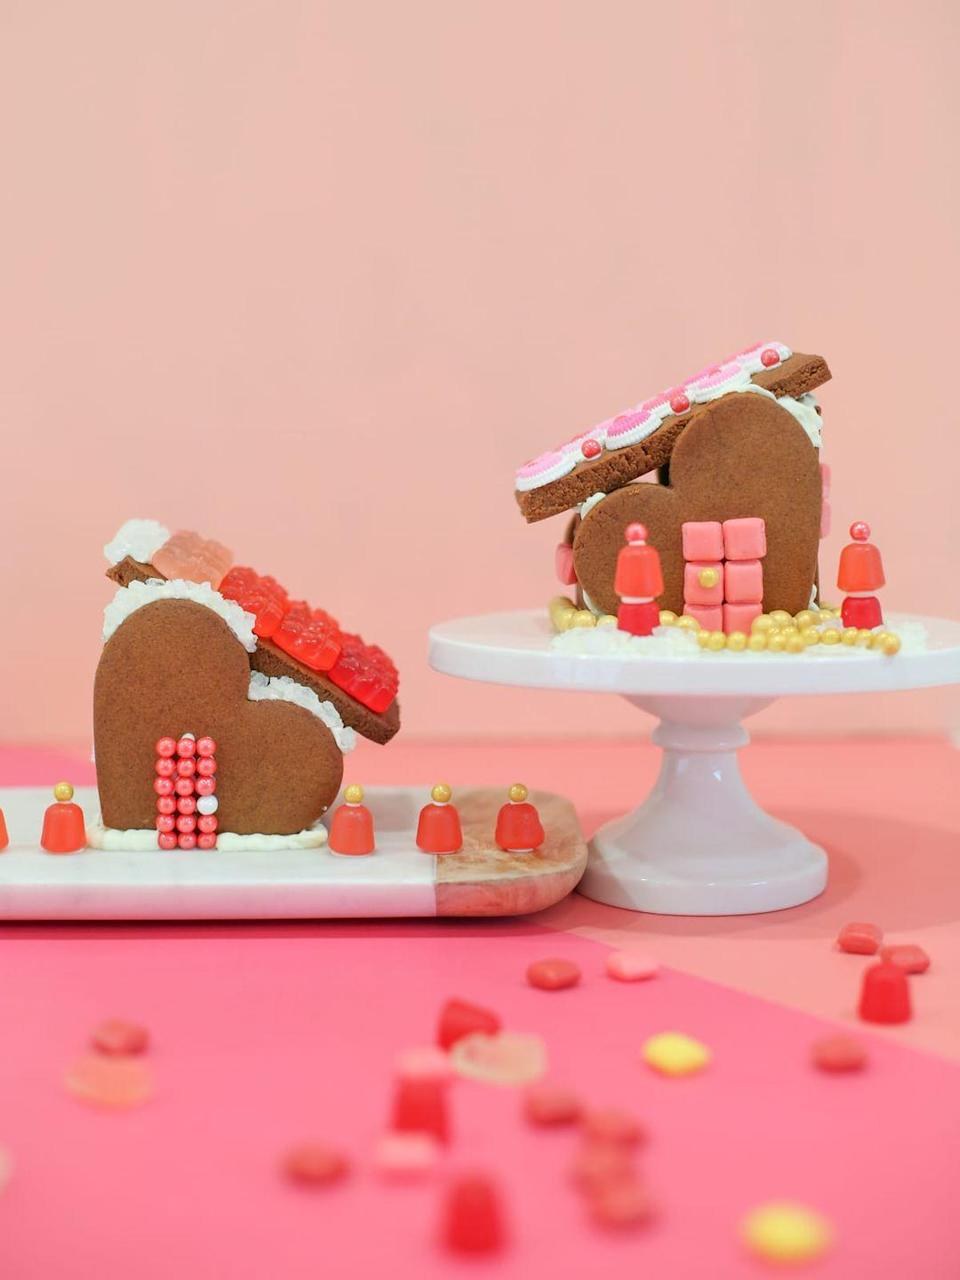 "<p>Break out the gingerbread for another holiday this year with these adorable, heart-shaped candy homes. </p><p><strong>Get the tutorial at <a href=""https://lovelyindeed.com/gingerbread-heart-houses-for-valentines-day/"" rel=""nofollow noopener"" target=""_blank"" data-ylk=""slk:Lovely Indeed"" class=""link rapid-noclick-resp"">Lovely Indeed</a>.</strong></p><p><strong><a class=""link rapid-noclick-resp"" href=""https://www.amazon.com/FASAKA-Valentines-Cookie-Cutters-Color/dp/B07ZNTKLMX/?tag=syn-yahoo-20&ascsubtag=%5Bartid%7C10050.g.1584%5Bsrc%7Cyahoo-us"" rel=""nofollow noopener"" target=""_blank"" data-ylk=""slk:SHOP HEART COOKIE CUTTERS"">SHOP HEART COOKIE CUTTERS</a><br></strong></p>"